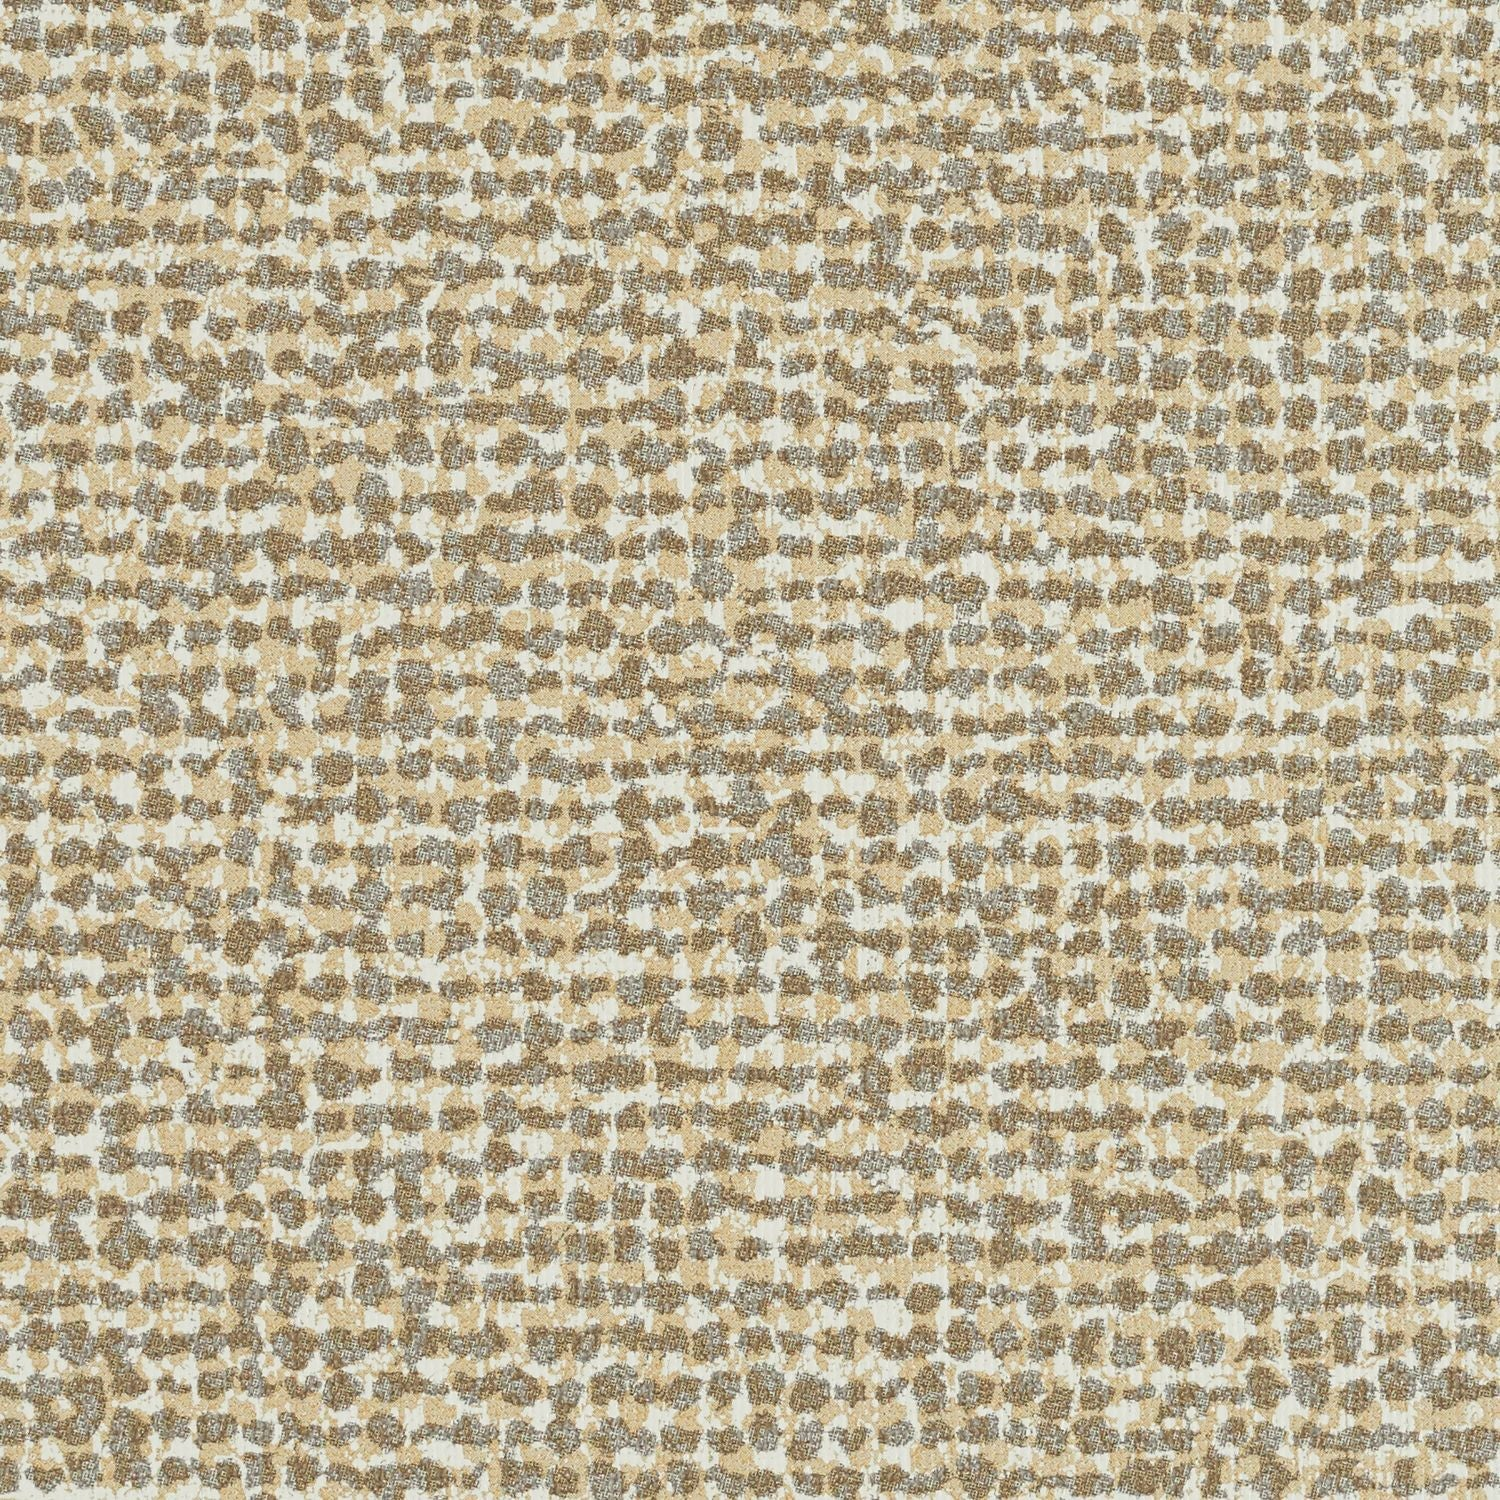 Meta Texture - Neutral Ground - 4063 - 06